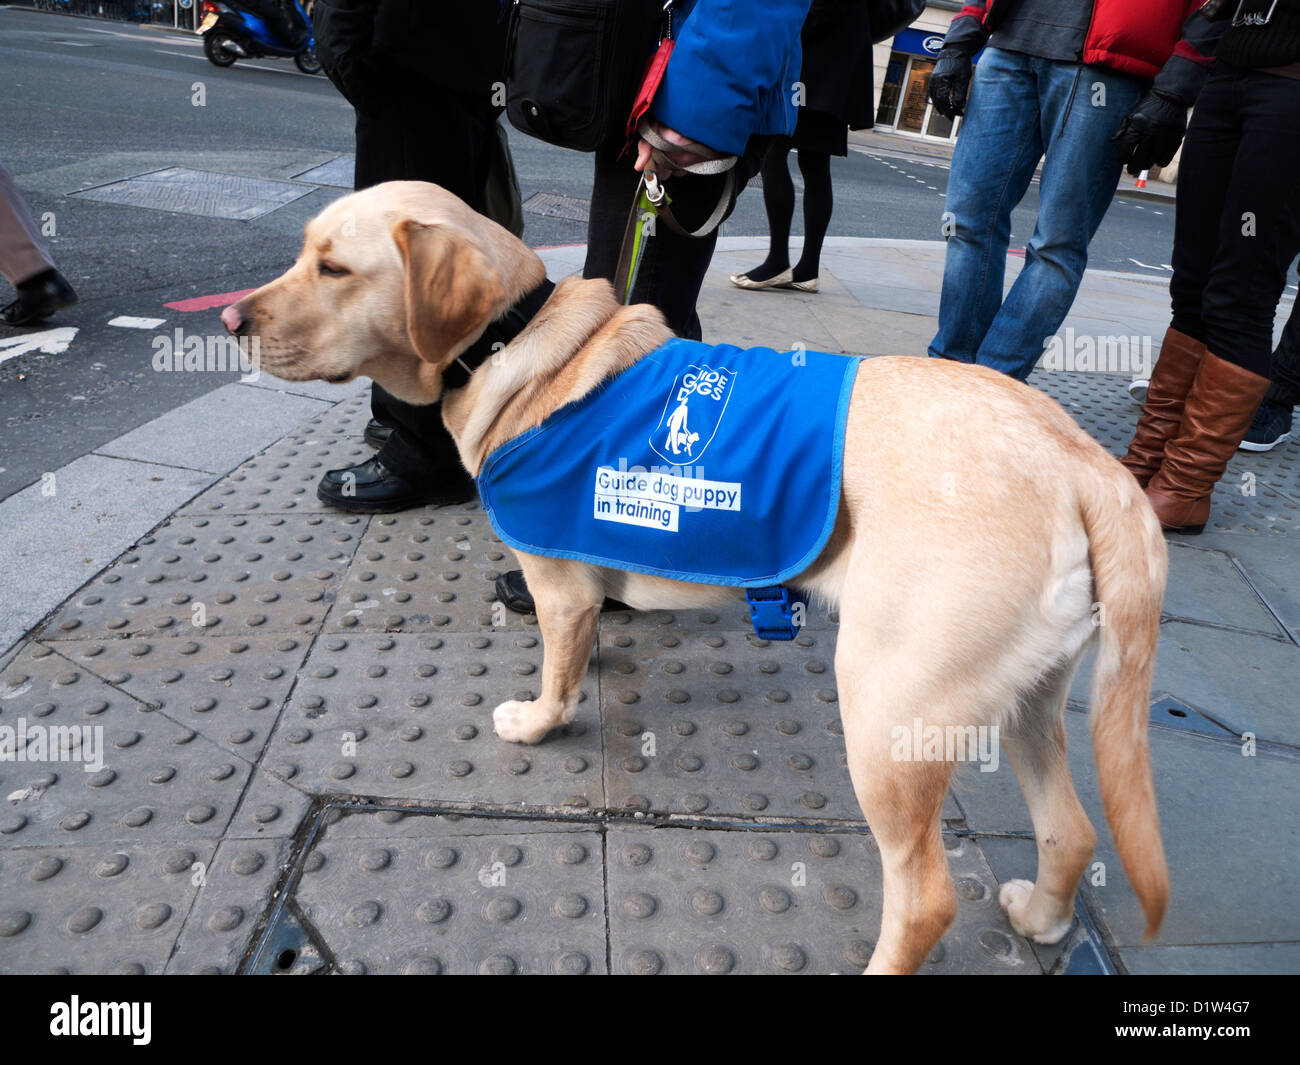 Guide dog puppy seeing eye dogs in training with people standing on